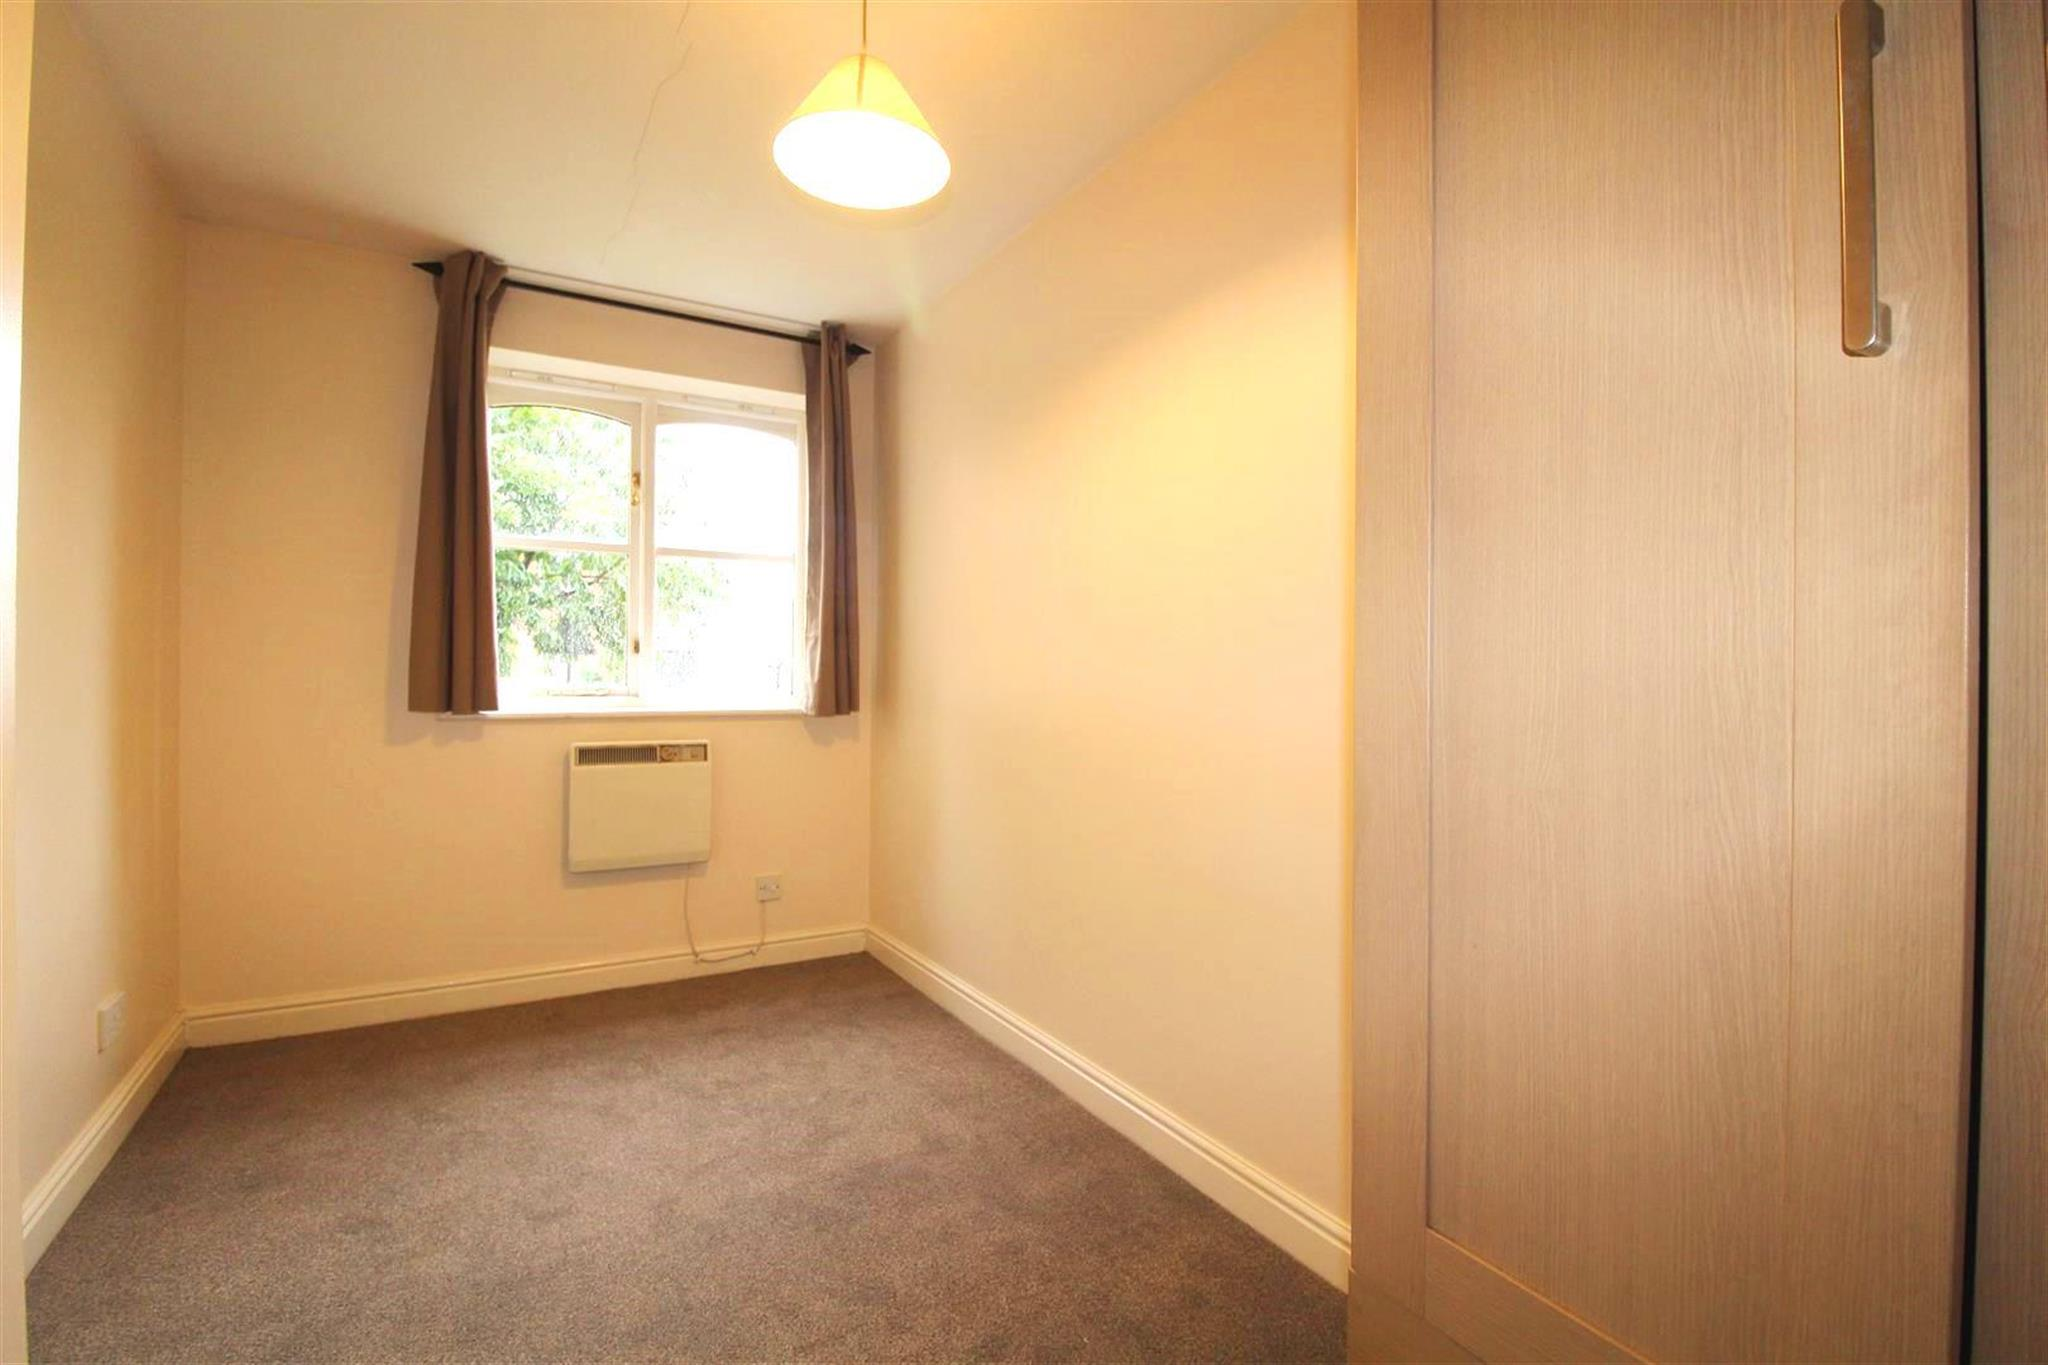 2 Bedroom Apartment To Rent Coalmans Way Slough Sl1 7nu